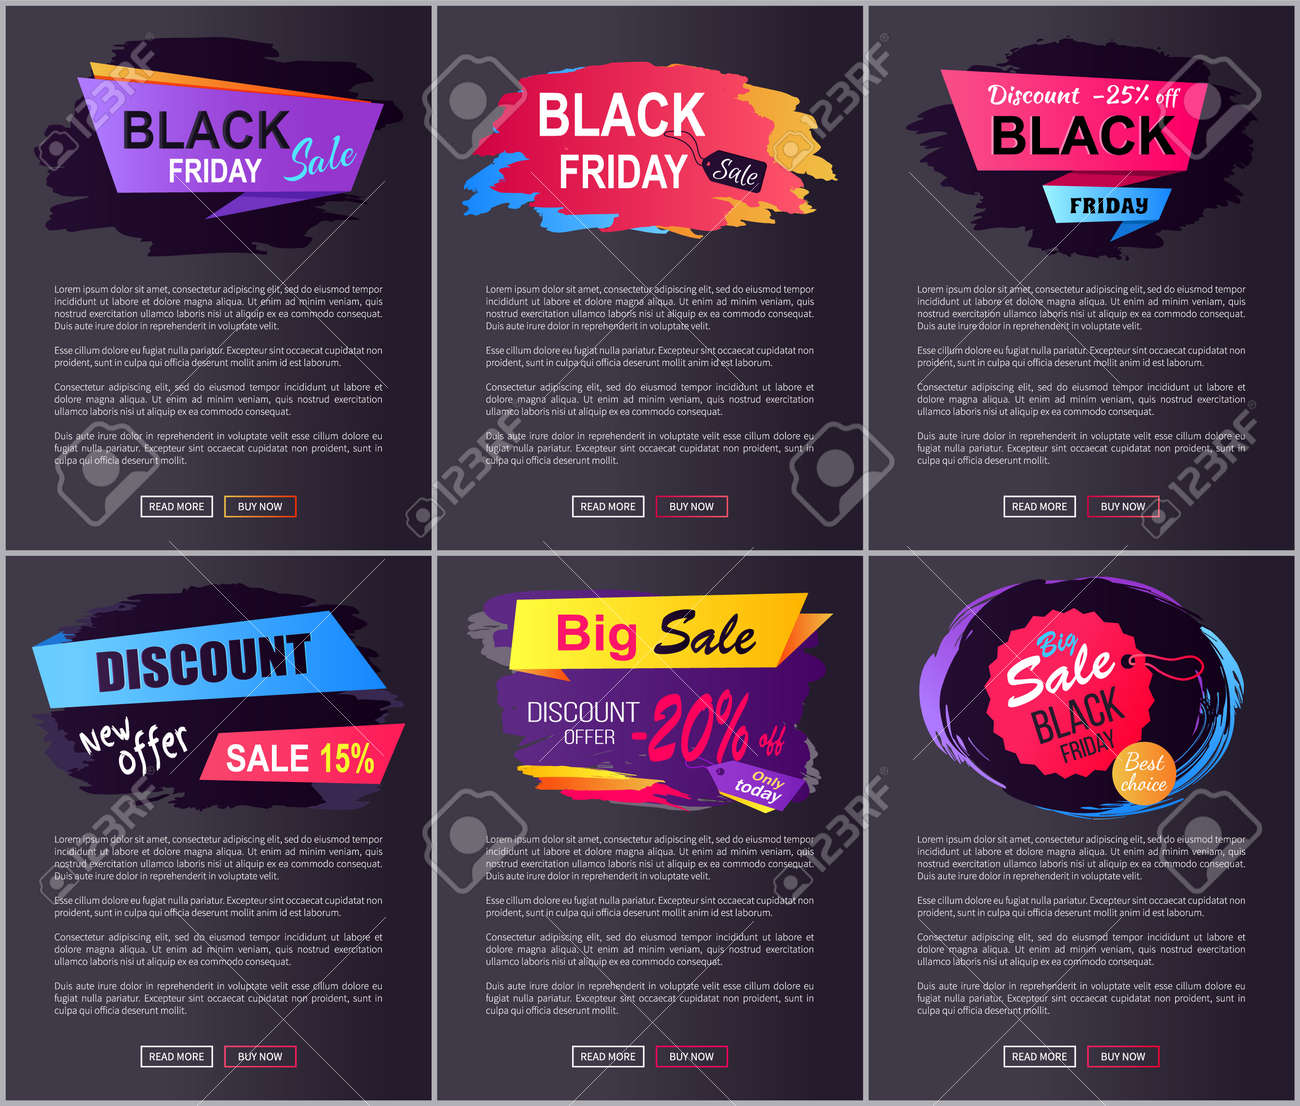 Black Friday Big Sale New Offer Discount 25 Off Web Pages Royalty Free Cliparts Vectors And Stock Illustration Image 91691664